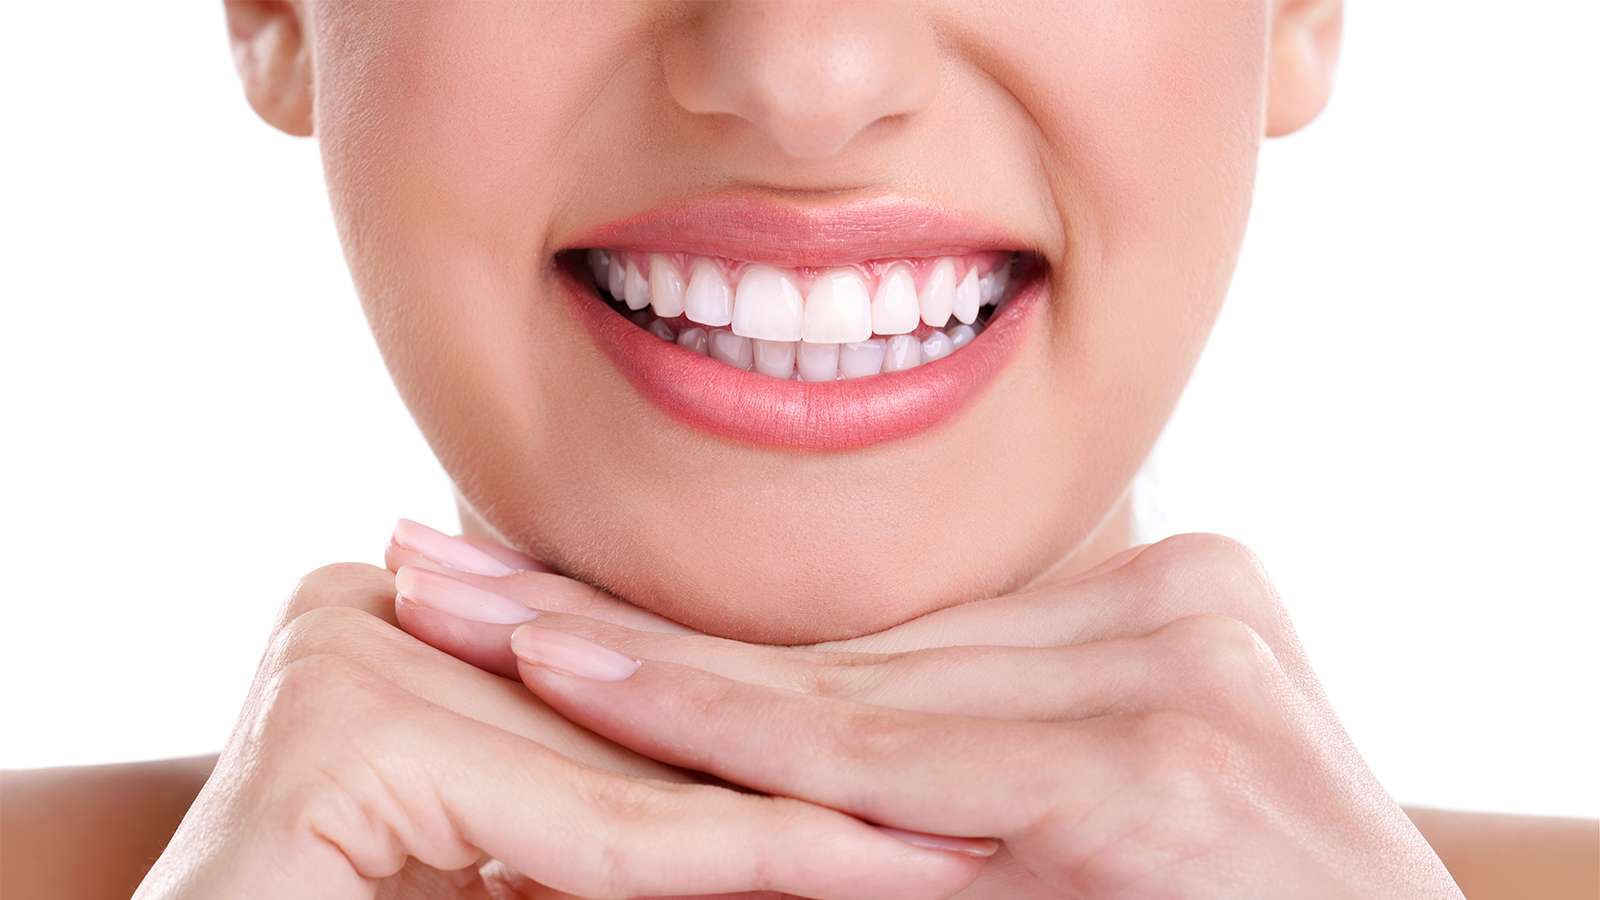 Show Off Your Smile - PNG HD Teeth Smile - Teeth Smile PNG HD